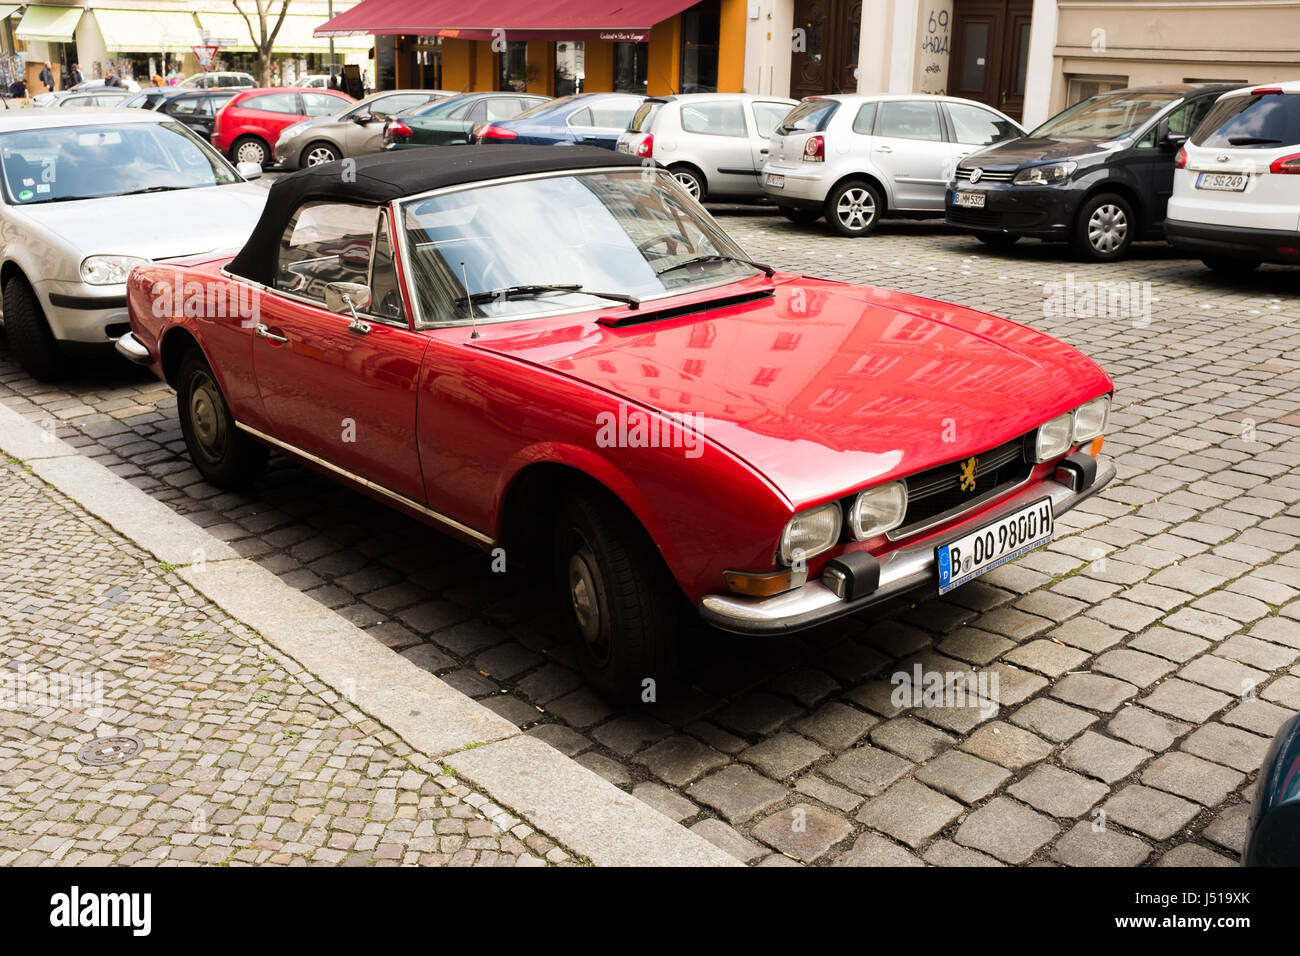 berlin may 3th a vintage red peugeot 504 cabriolet from the 70s stock photo royalty free. Black Bedroom Furniture Sets. Home Design Ideas